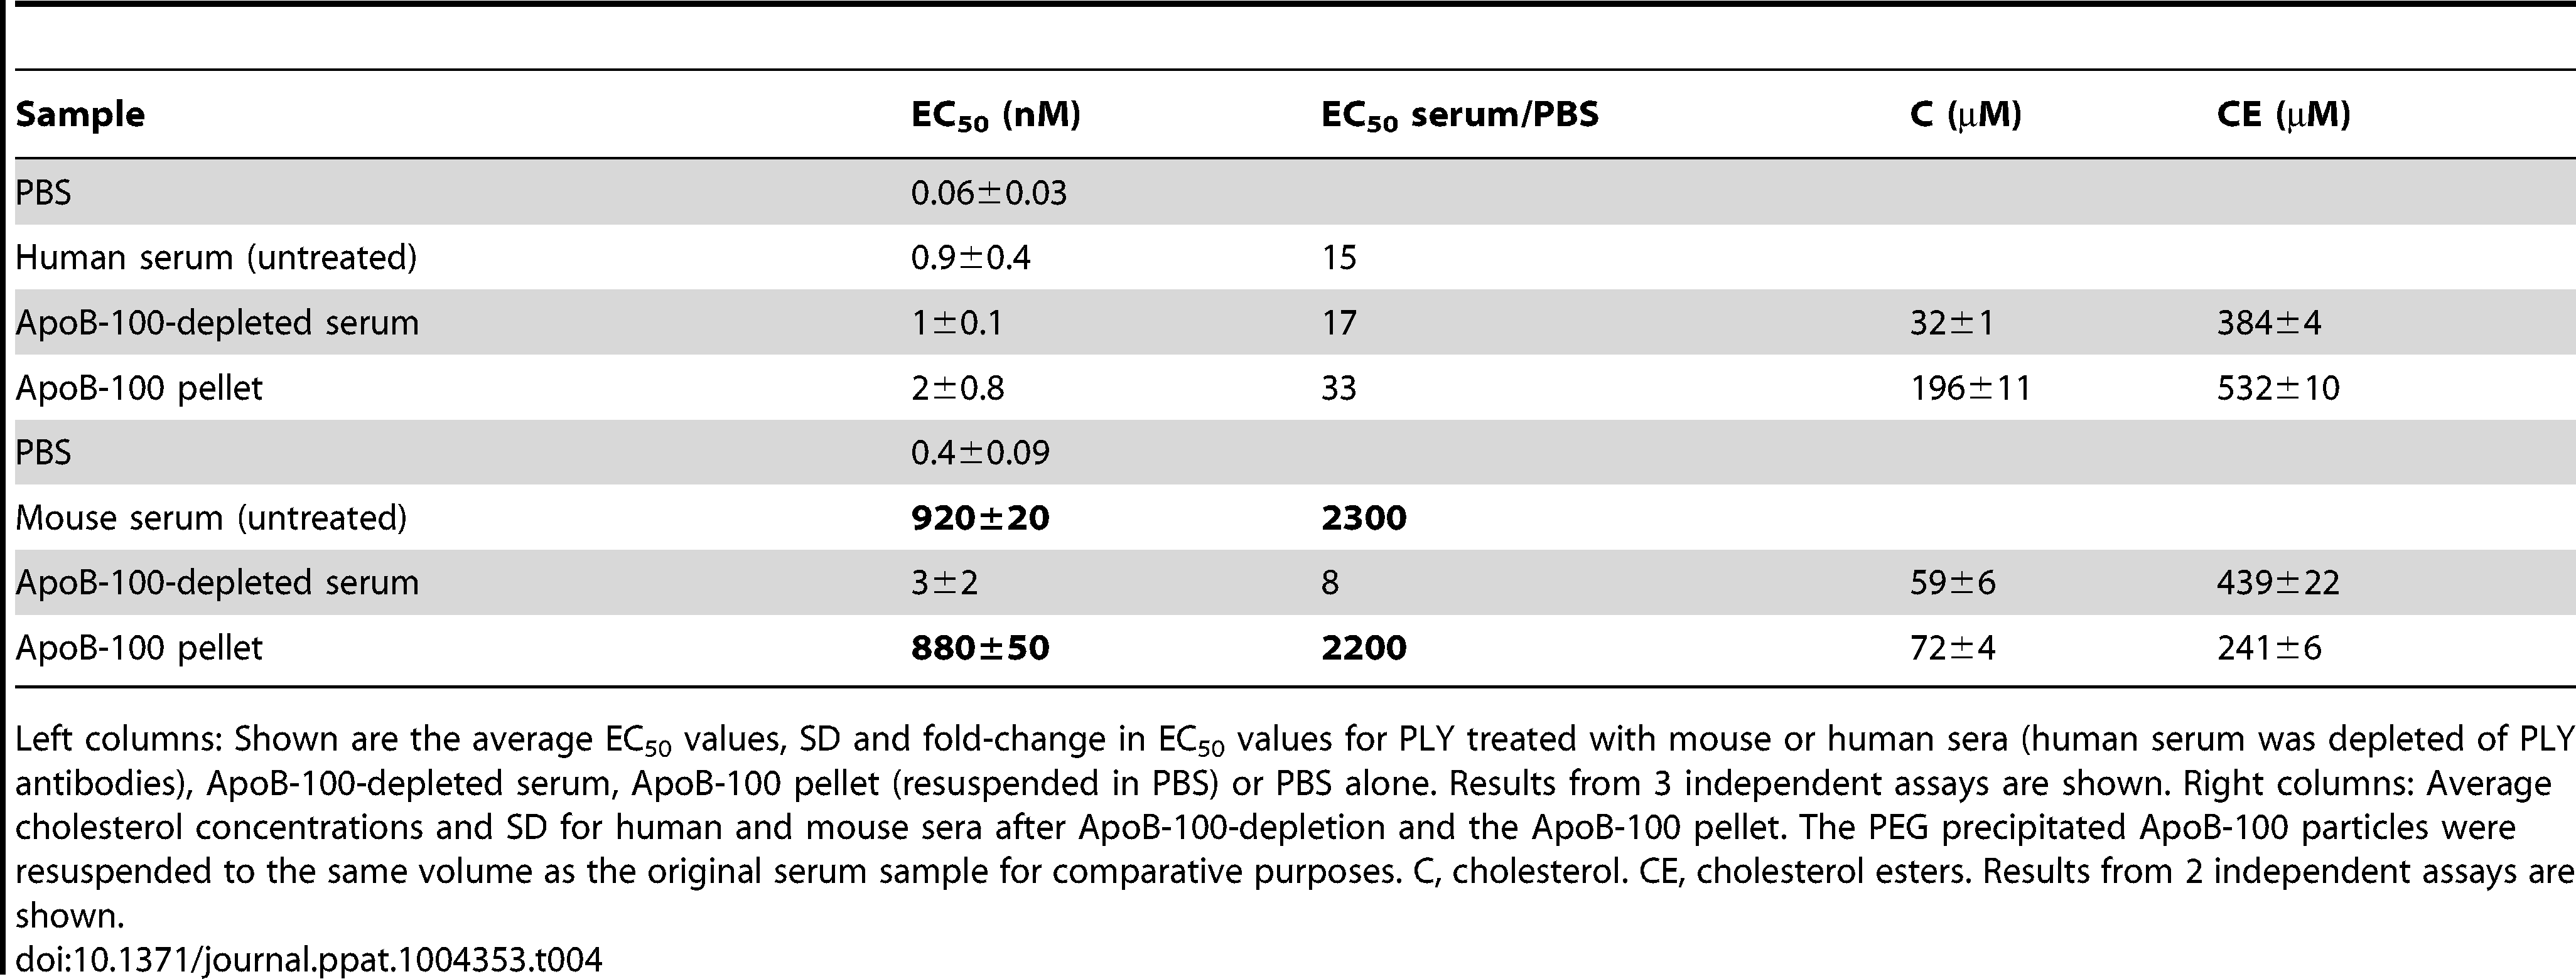 Inhibitory activity and cholesterol content of mouse and human ApoB-100 sera fractions.